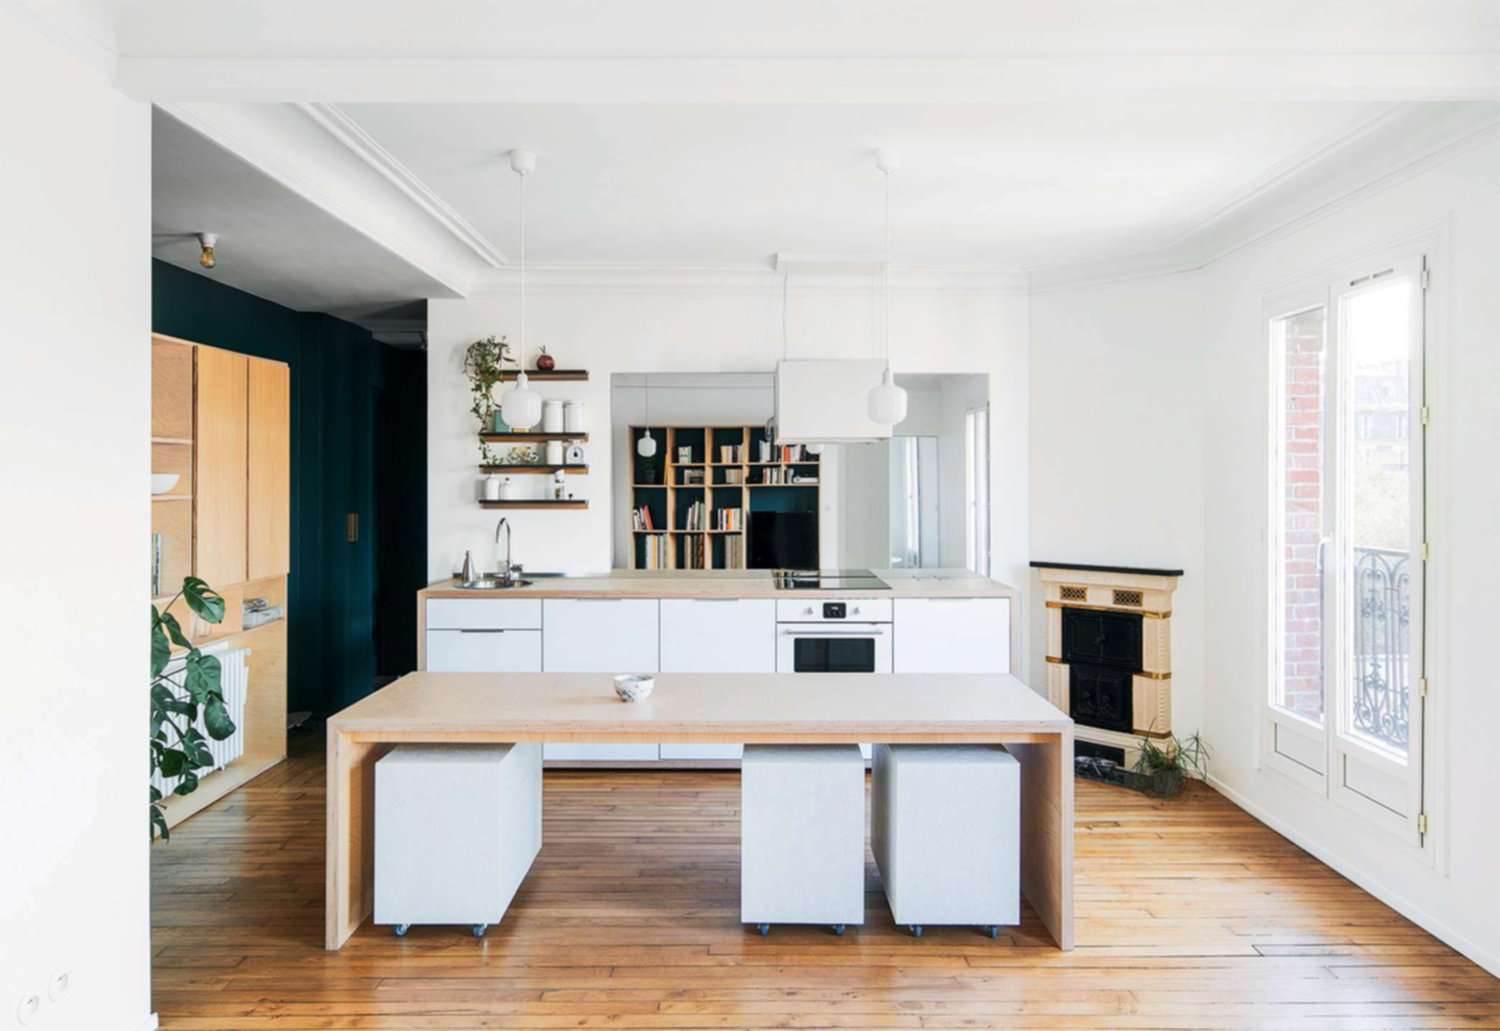 Rénovation d'un appartement parisien par l'architecte Emma Saintonge